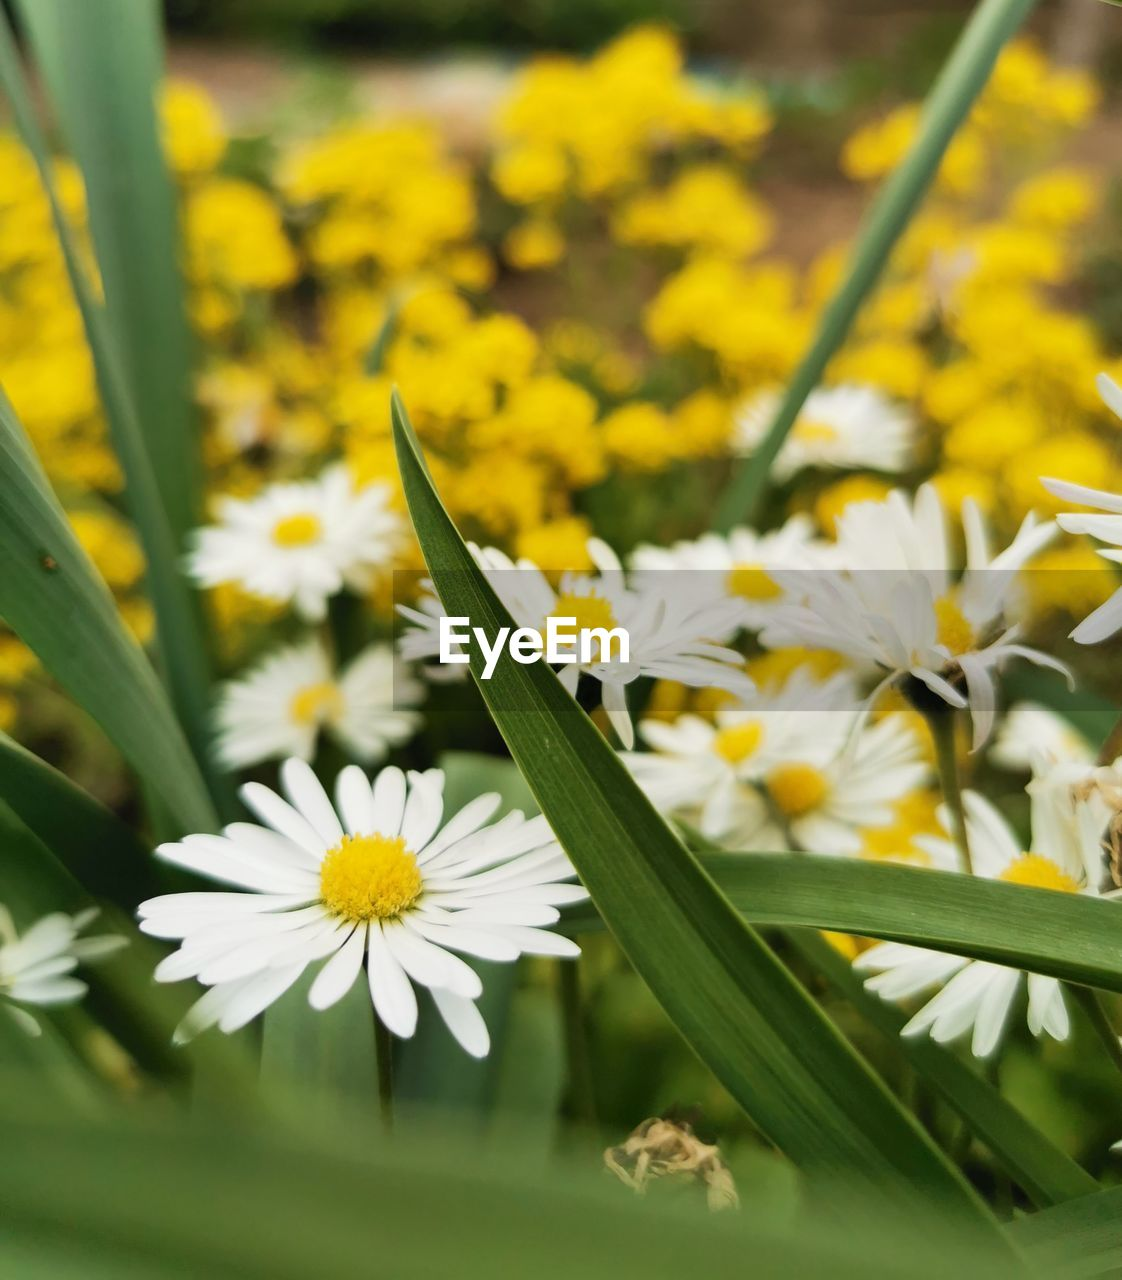 flowering plant, flower, plant, vulnerability, fragility, freshness, beauty in nature, growth, petal, close-up, yellow, flower head, inflorescence, nature, white color, selective focus, day, no people, focus on foreground, field, pollen